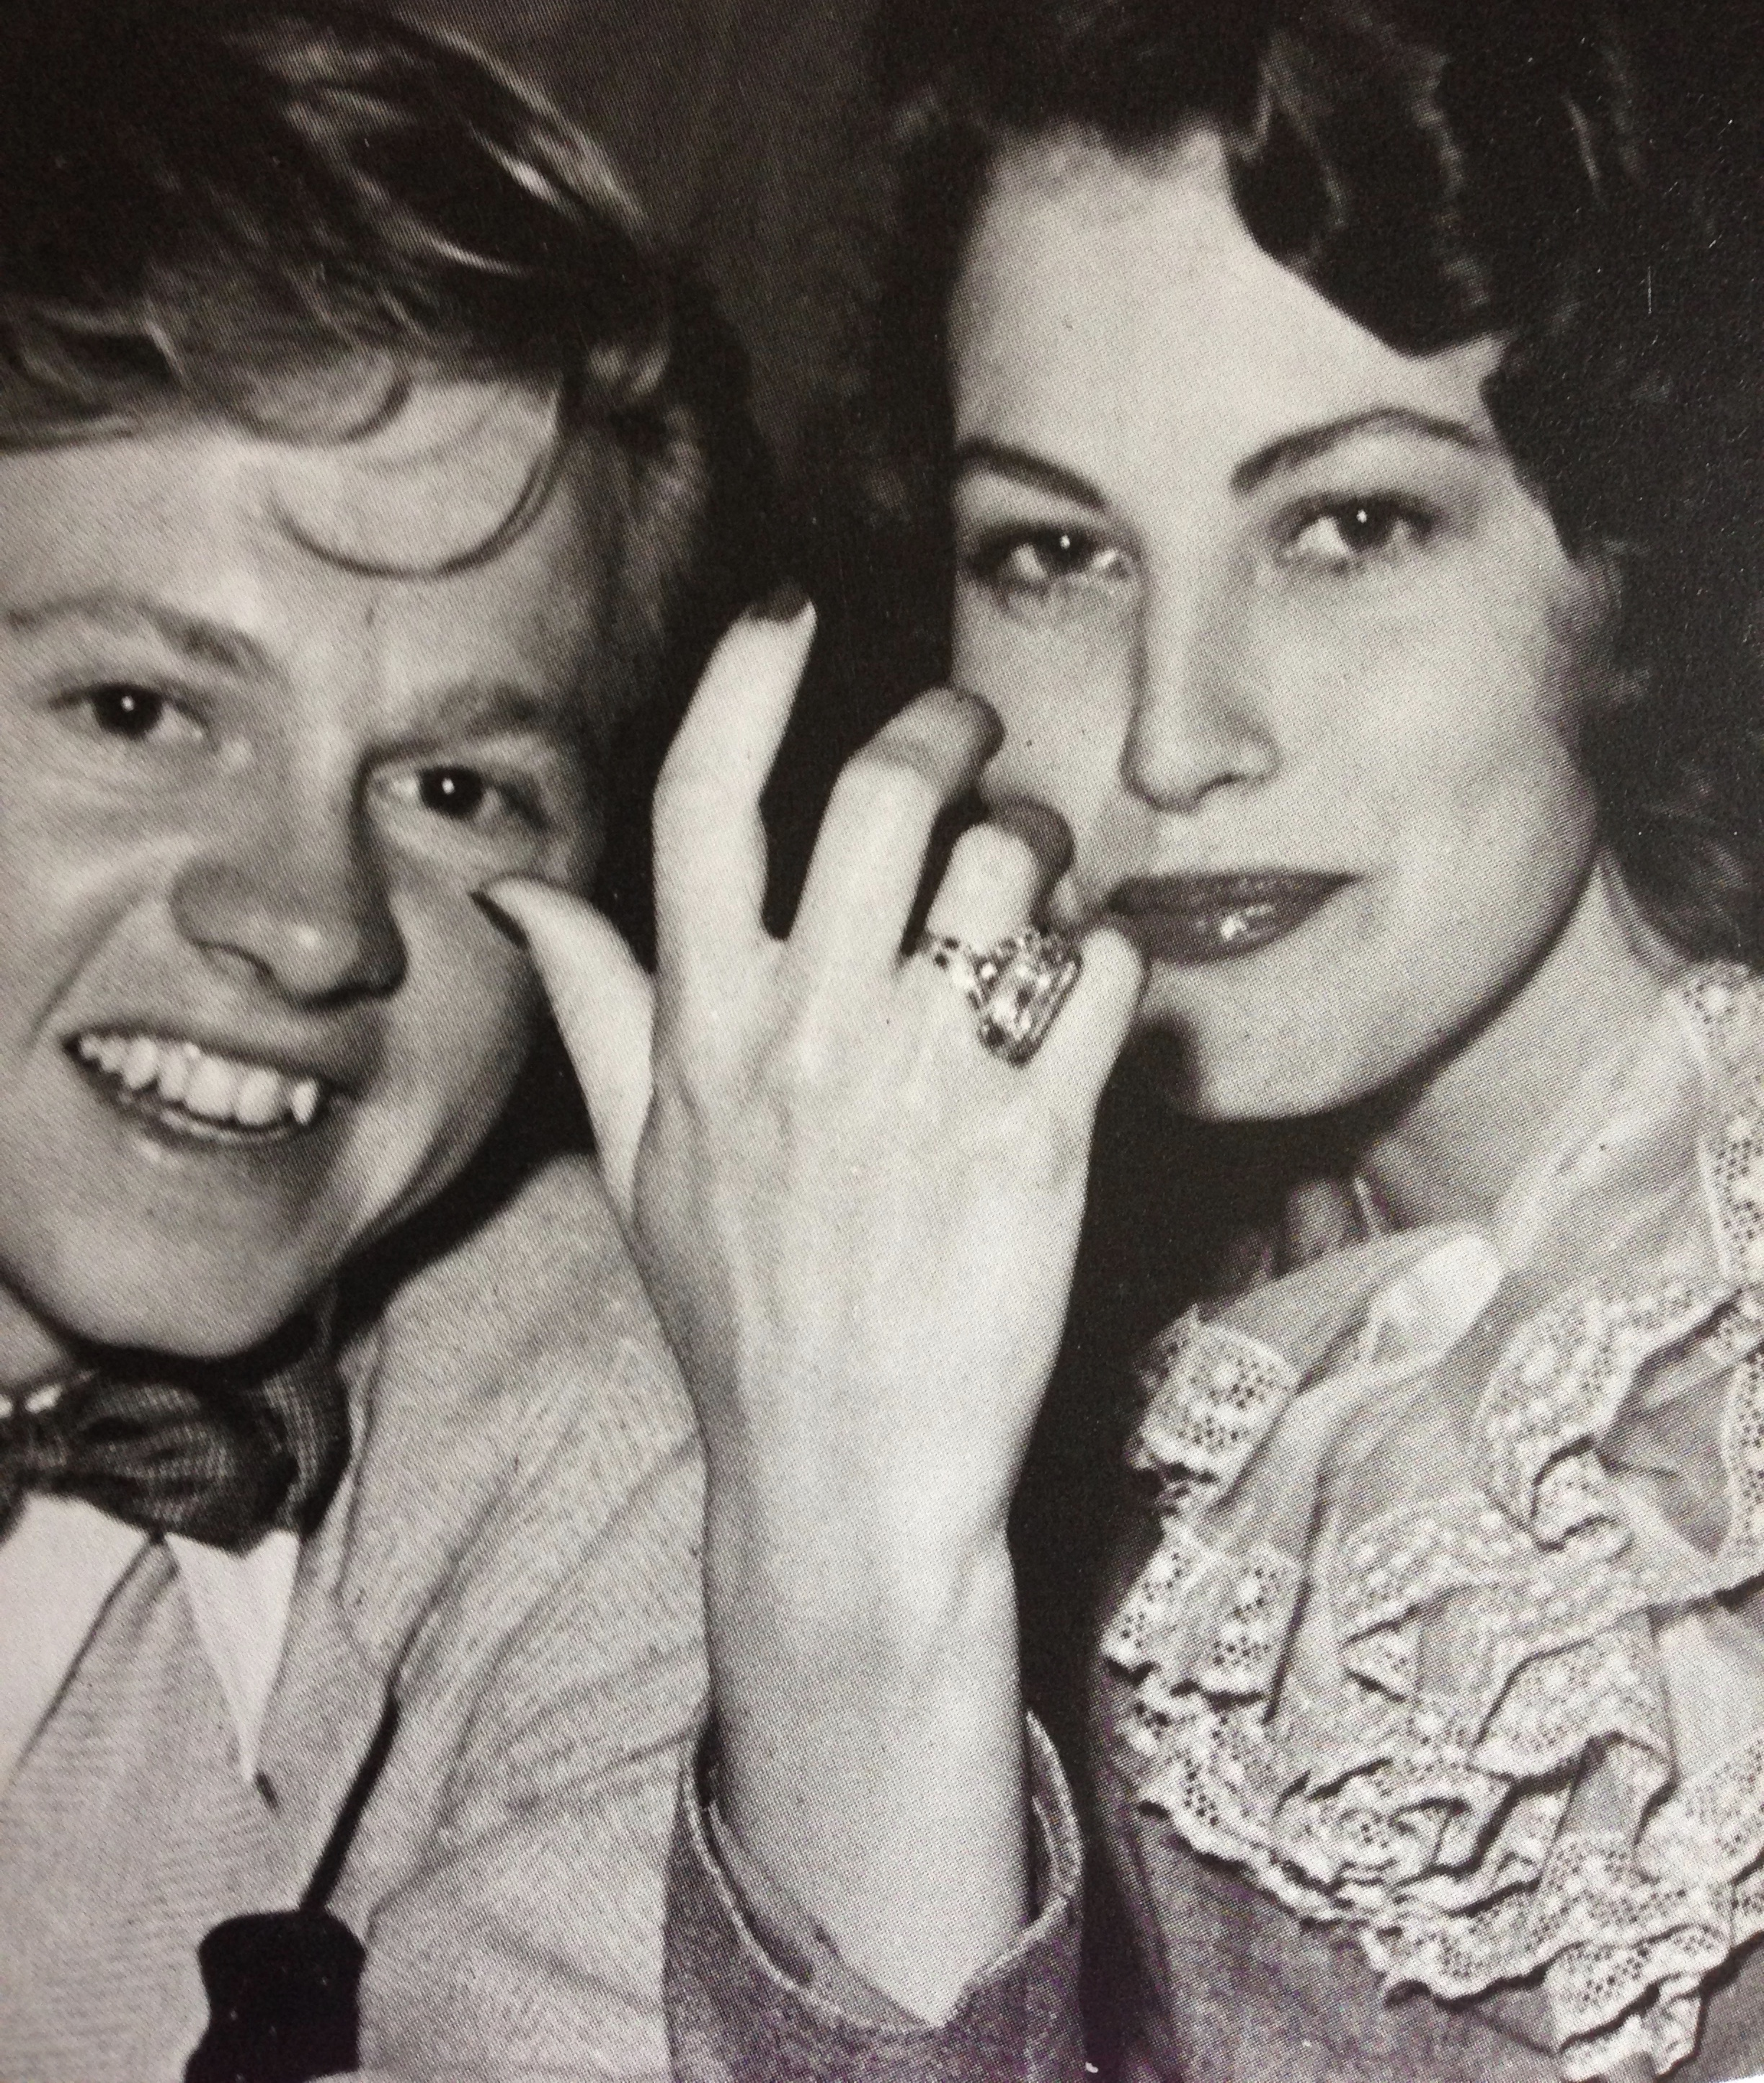 Ava Gardner and Mickey Rooney were engaged in 1942.  The ring her gave her was diamonds set in yellow gold.  During the war years of 1940-45, platinum was not available for use in jewellery.